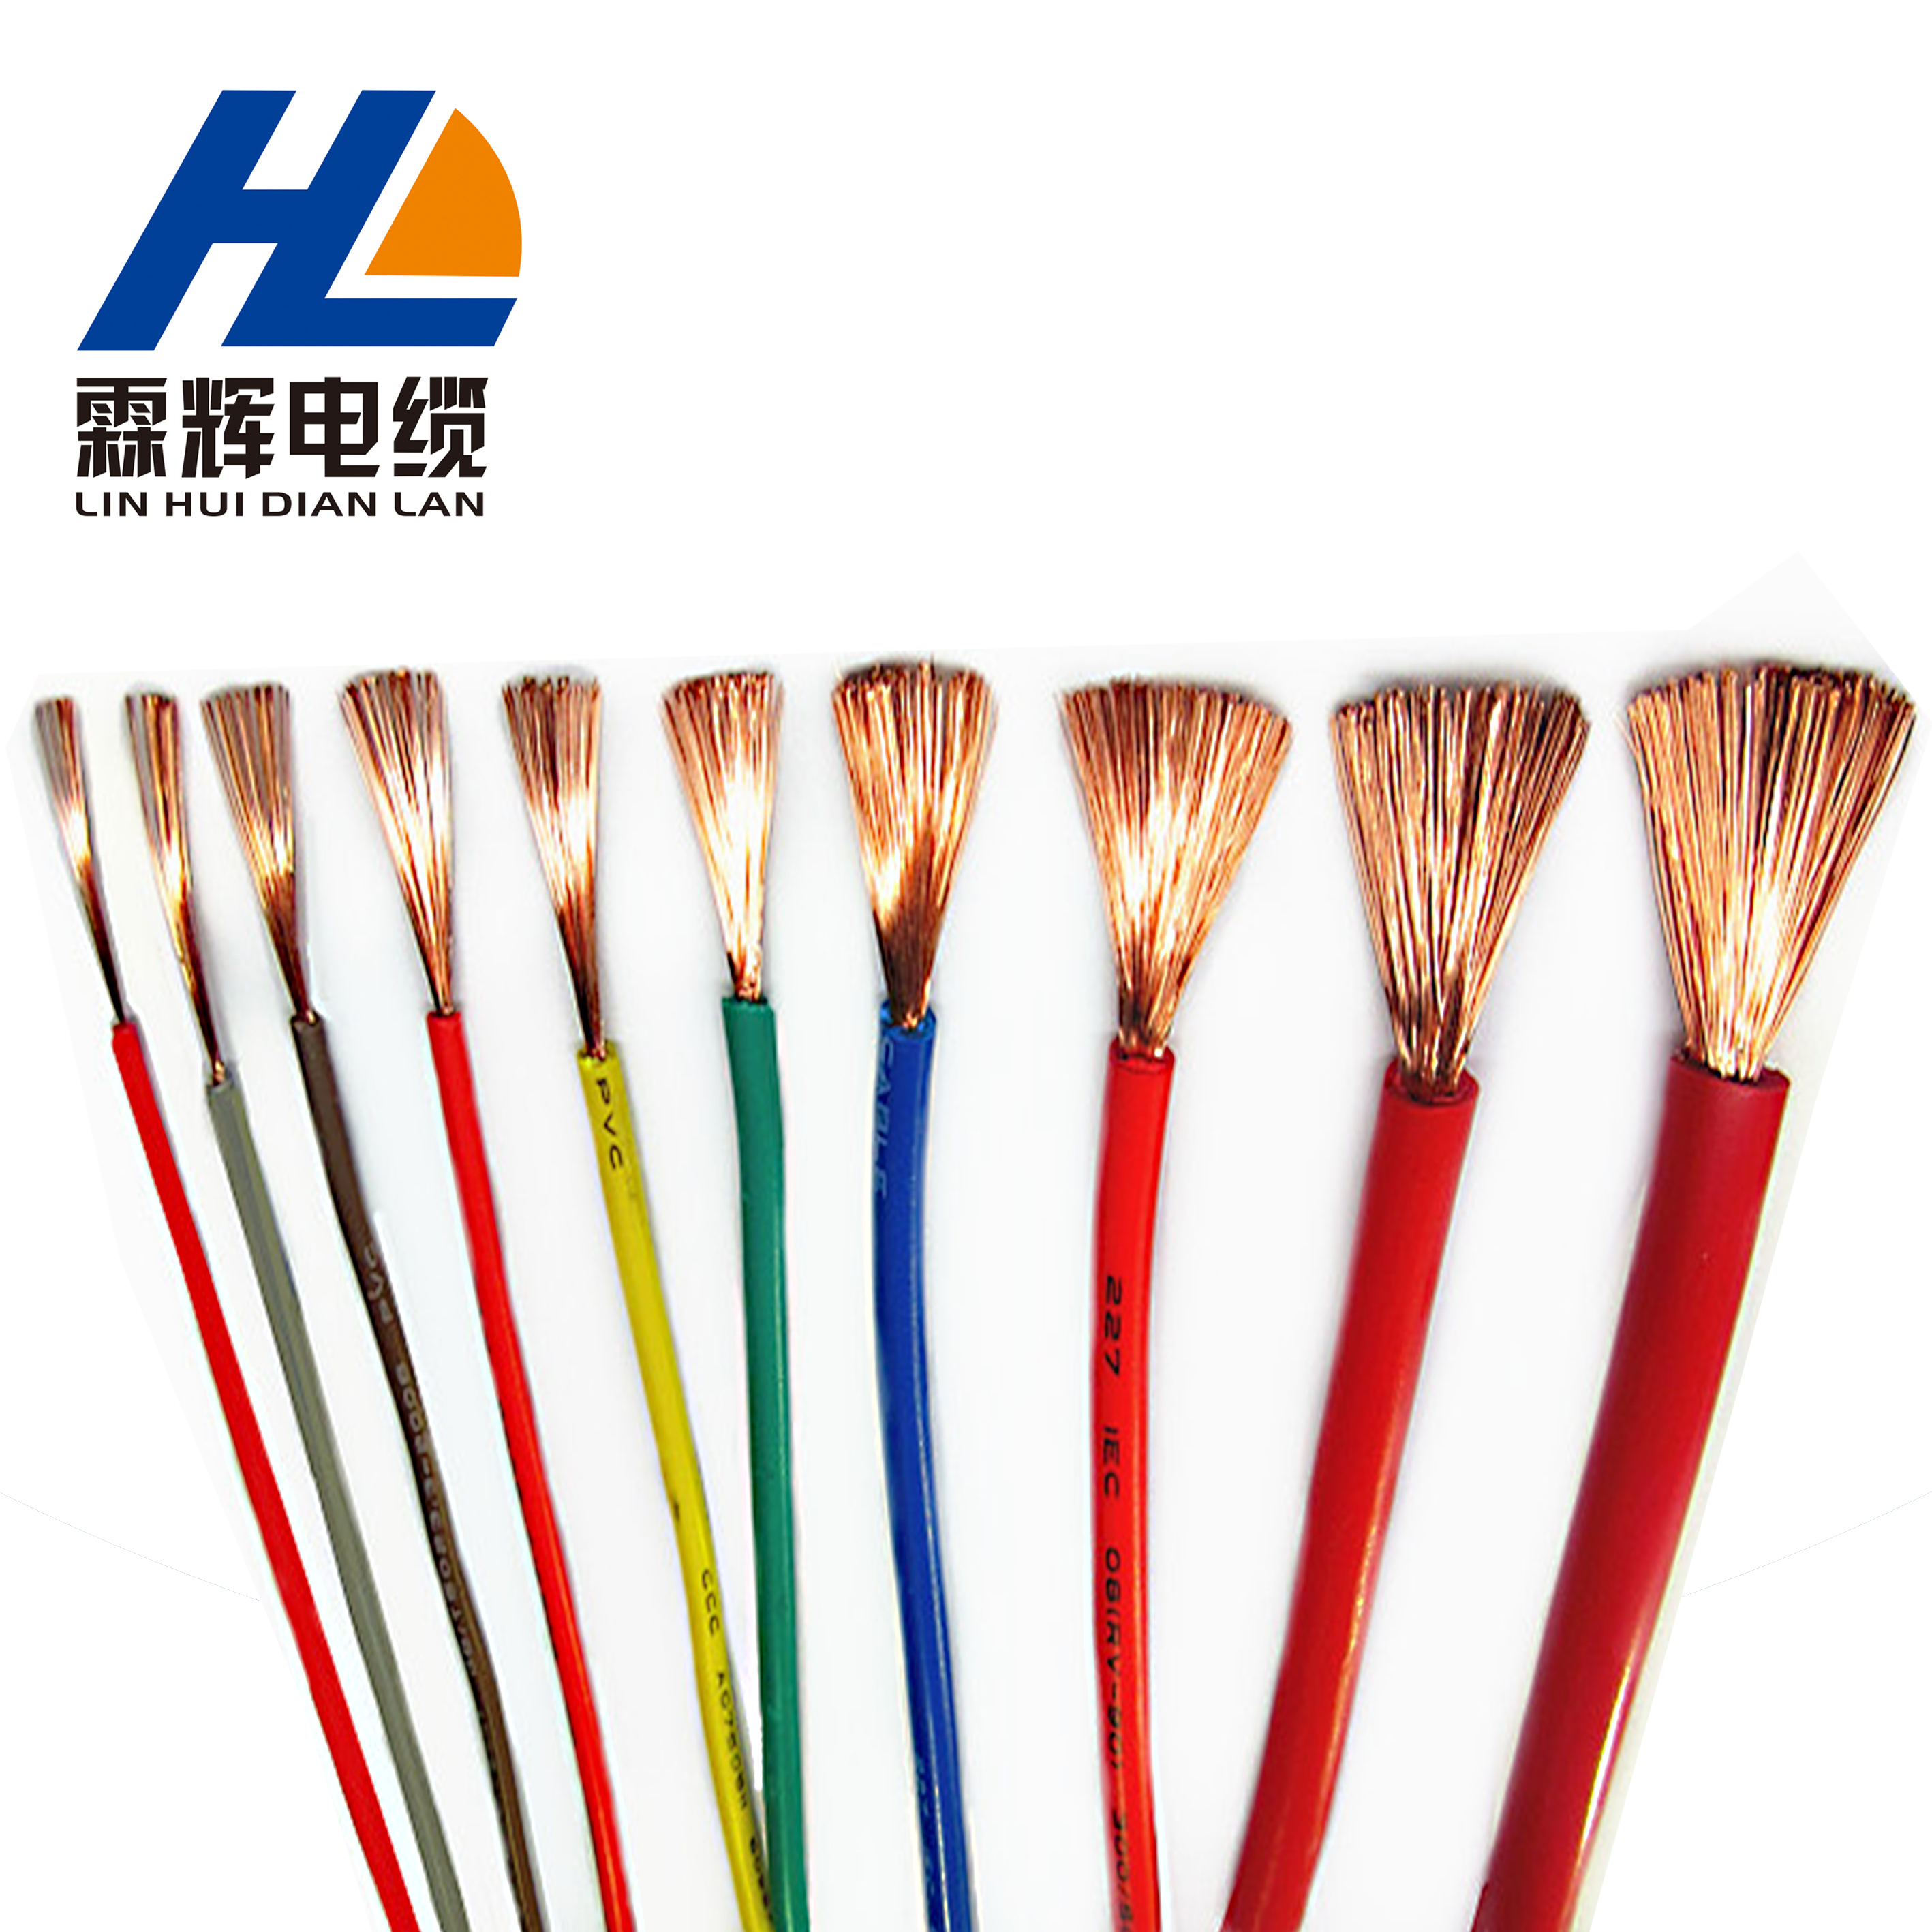 China Sheathed Electrical Wire Electric Single Copper Core Ground Bv Photos Manufacturers And Suppliers On Alibabacom